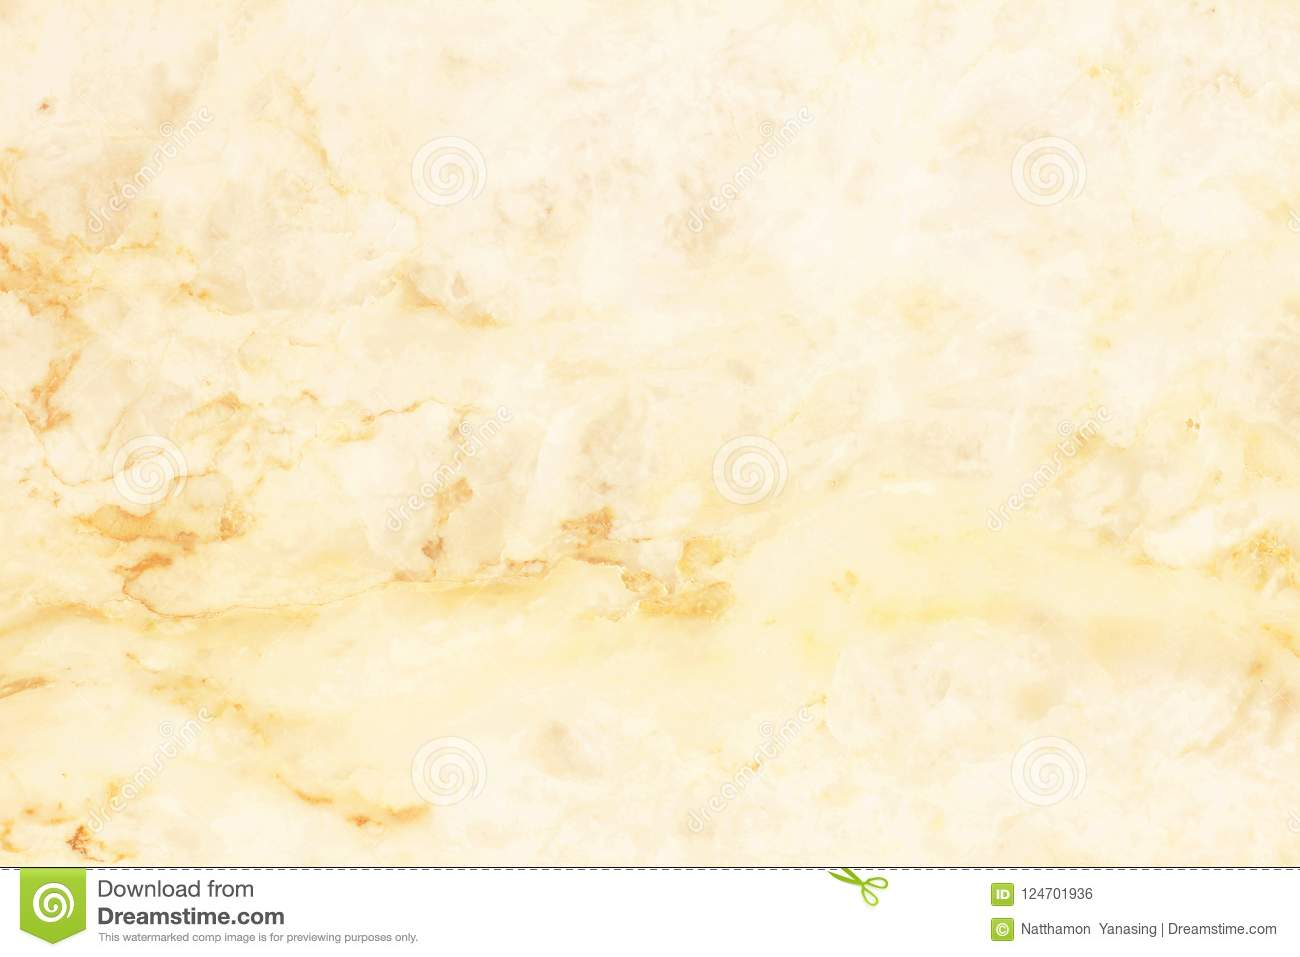 Gold white marble texture background with detail structure high resolution, abstract luxurious seamless of tile stone floor